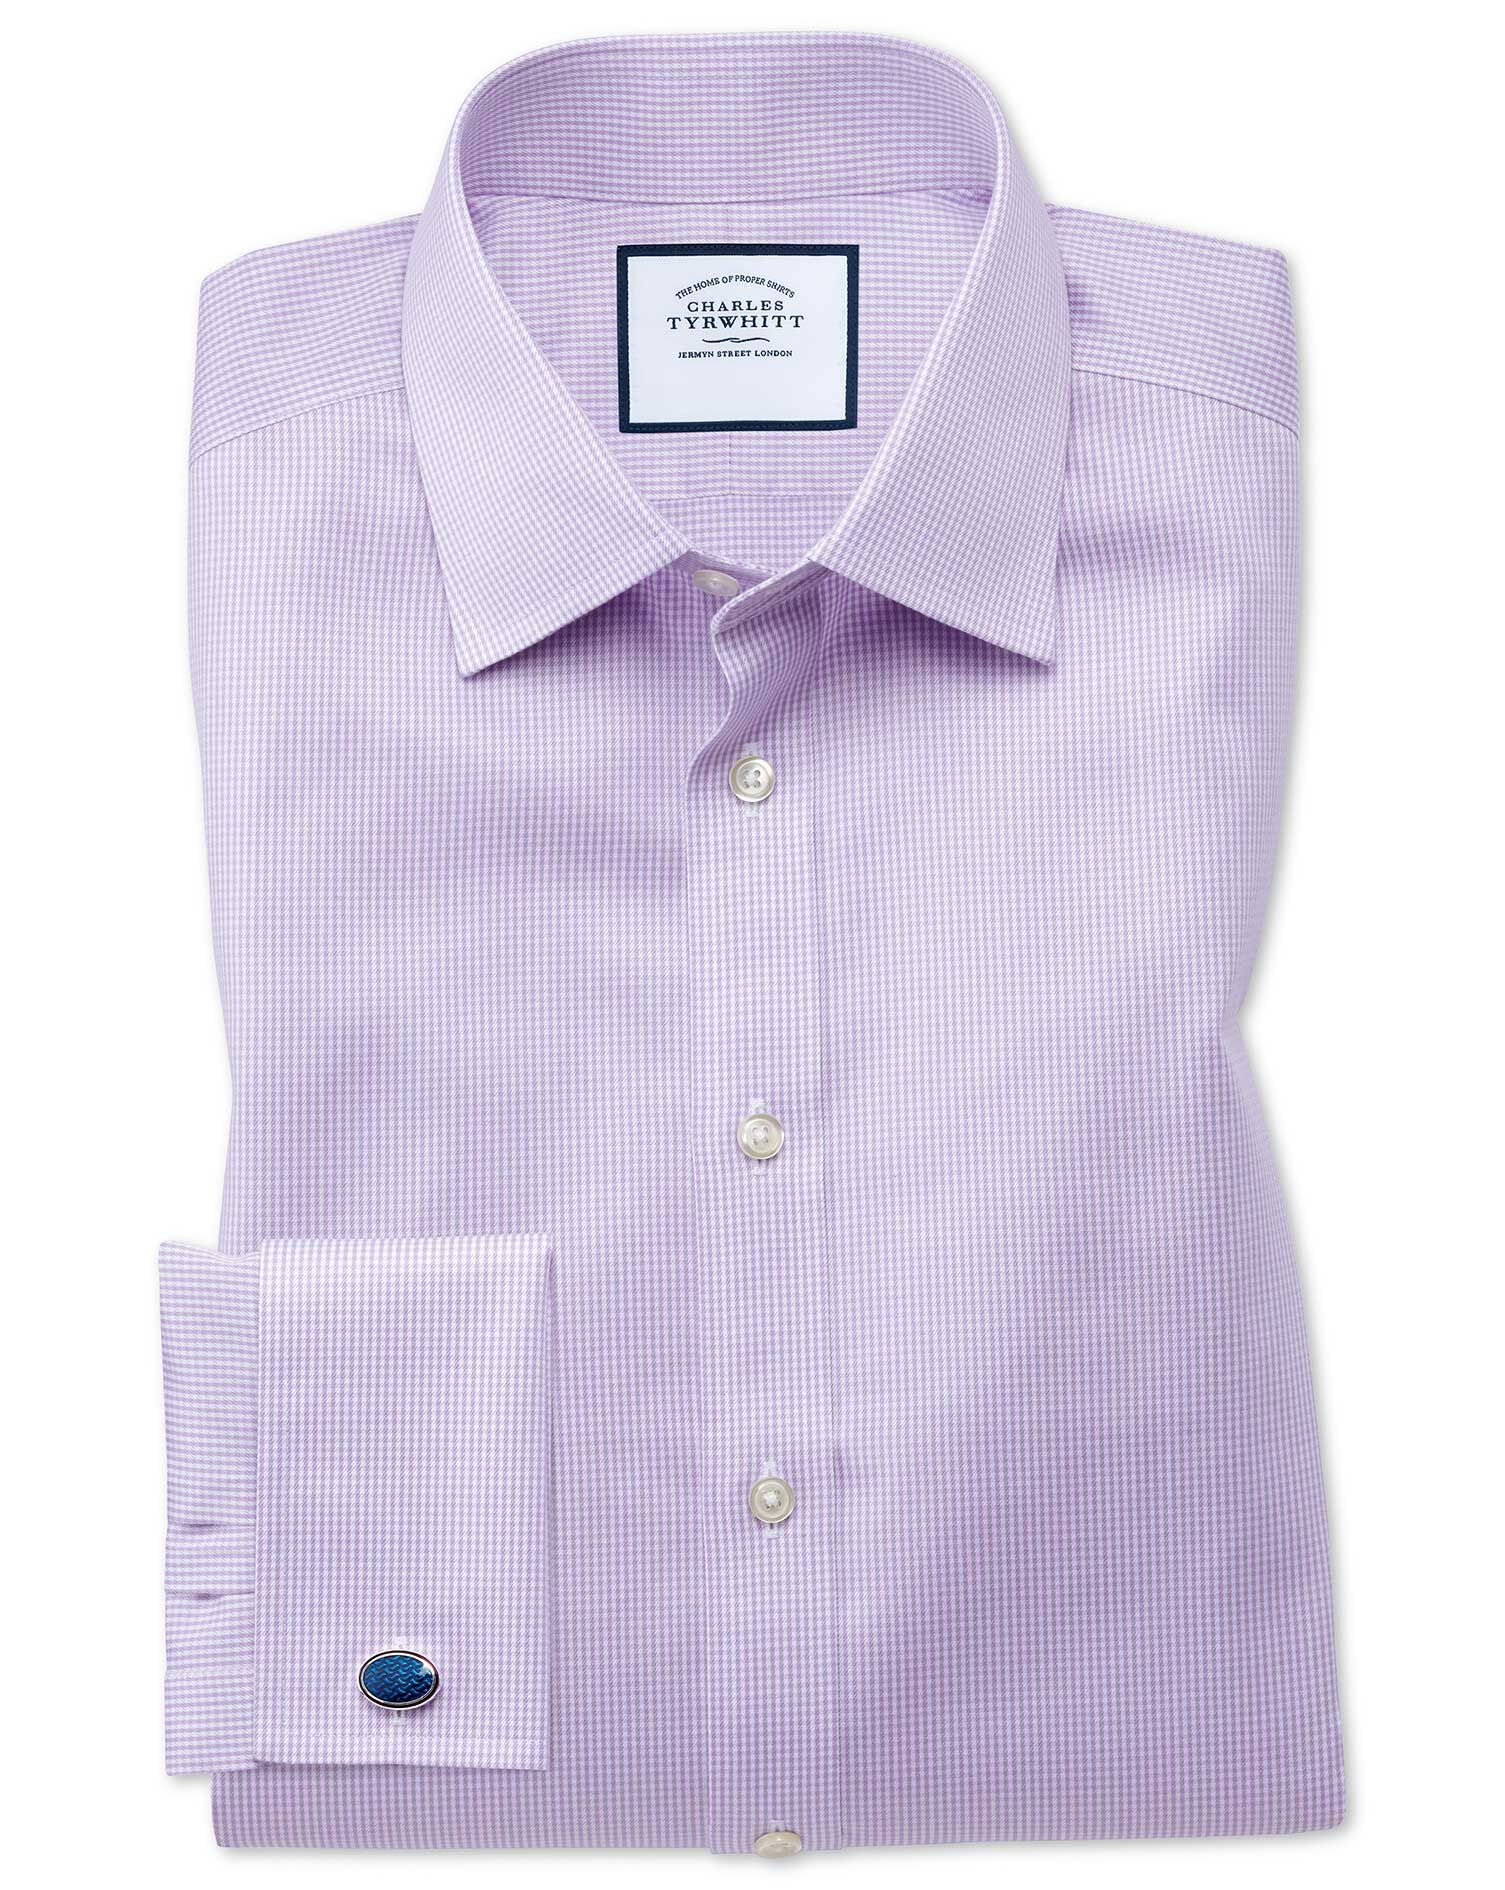 Classic Fit Non-Iron Puppytooth Lilac Cotton Formal Shirt Single Cuff Size 17/36 by Charles Tyrwhitt